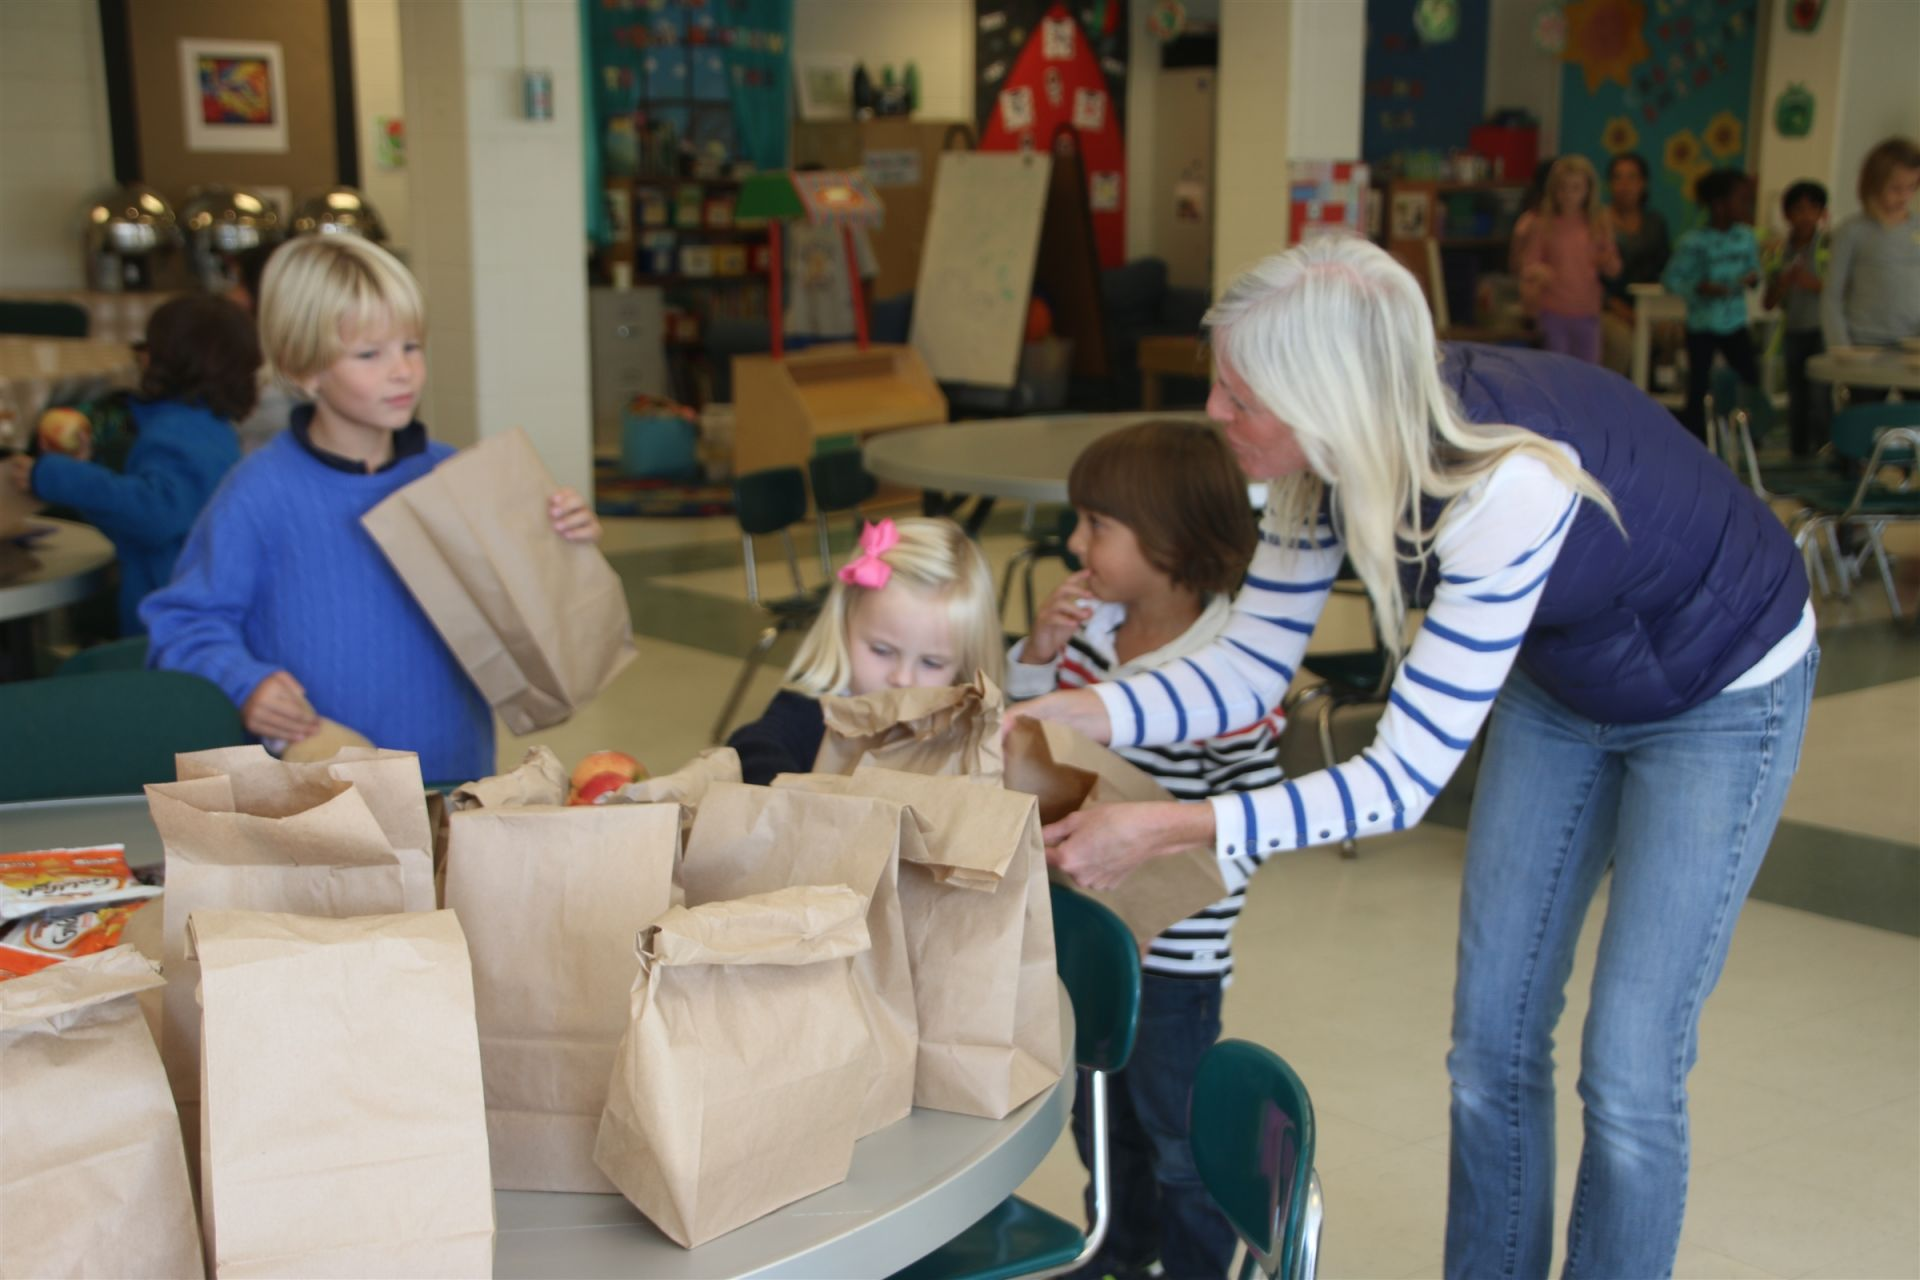 Each month, Beauvoir students gather to pack snacks for their peers in after school programs across Washington. The snacks are picked up and distributed by the DC Central Kitchen.